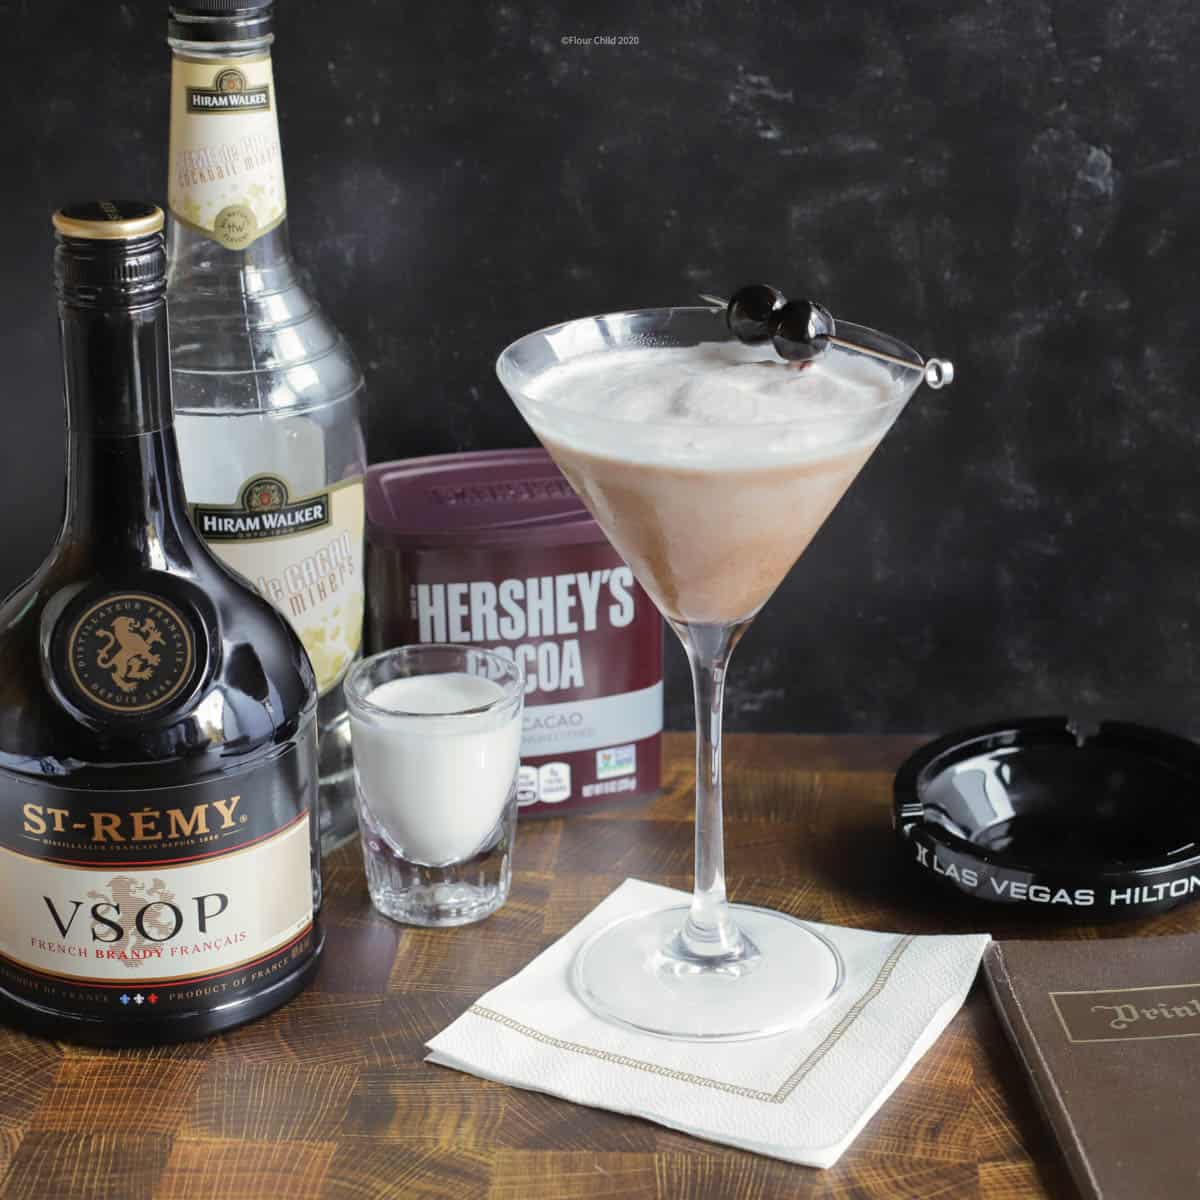 The Brandy Alexander is an easy to make chocolate flavored cocktail that is mixed with cream and Creme de Cacao liqueur. Blend it up instead of merely shaking and it is like drinking a milk shake.